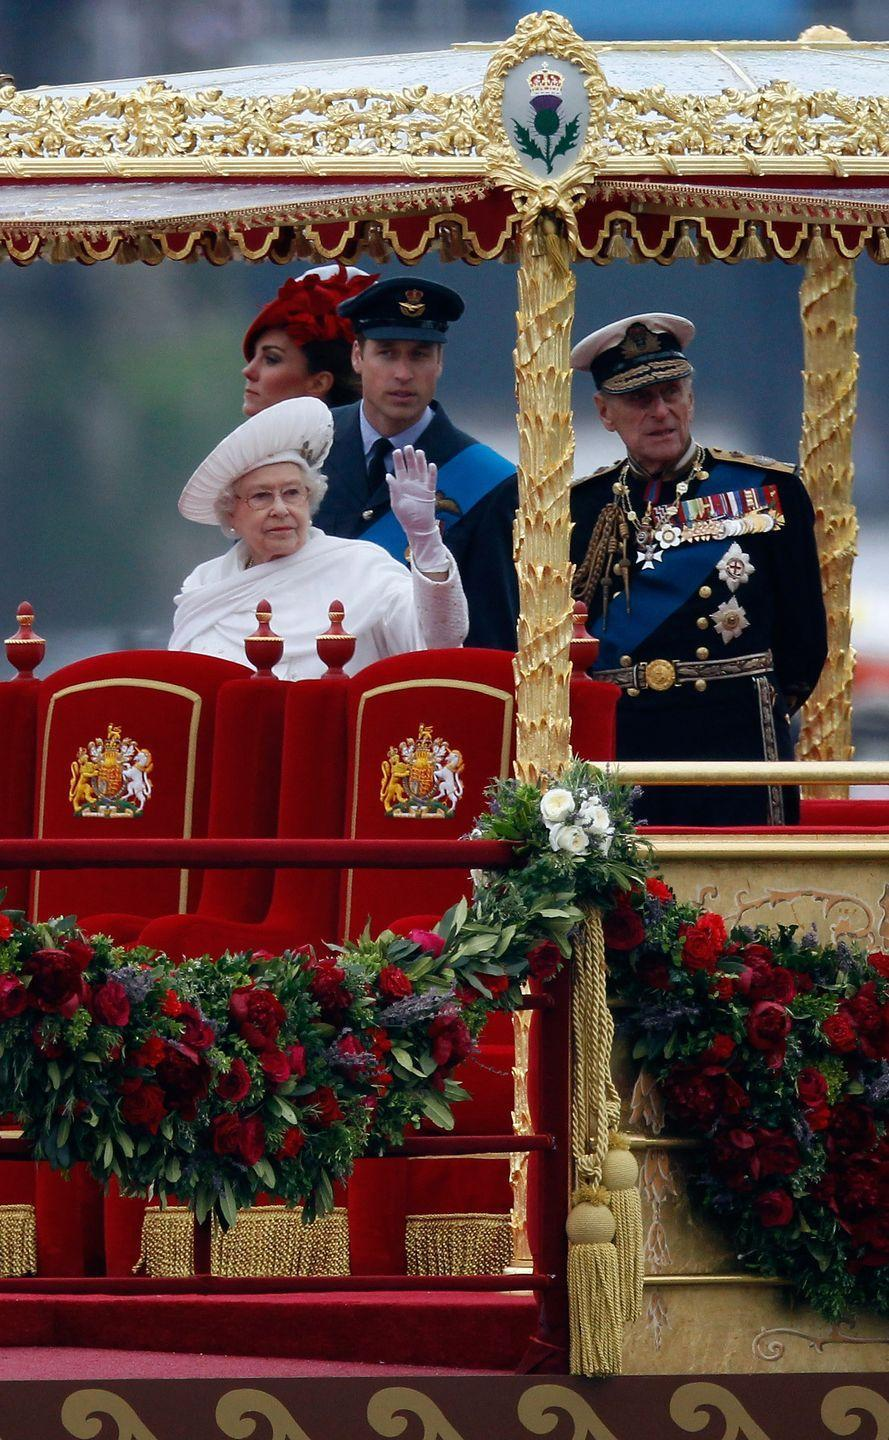 """<p>The Queen celebrated her 60-year reign in 2012 with her Diamond Jubilee. Four years later, she <a href=""""https://www.biography.com/royalty/queen-victoria"""" rel=""""nofollow noopener"""" target=""""_blank"""" data-ylk=""""slk:passed Queen Victoria"""" class=""""link rapid-noclick-resp"""">passed Queen Victoria</a> as the longest-reigning monarch in British history.</p>"""